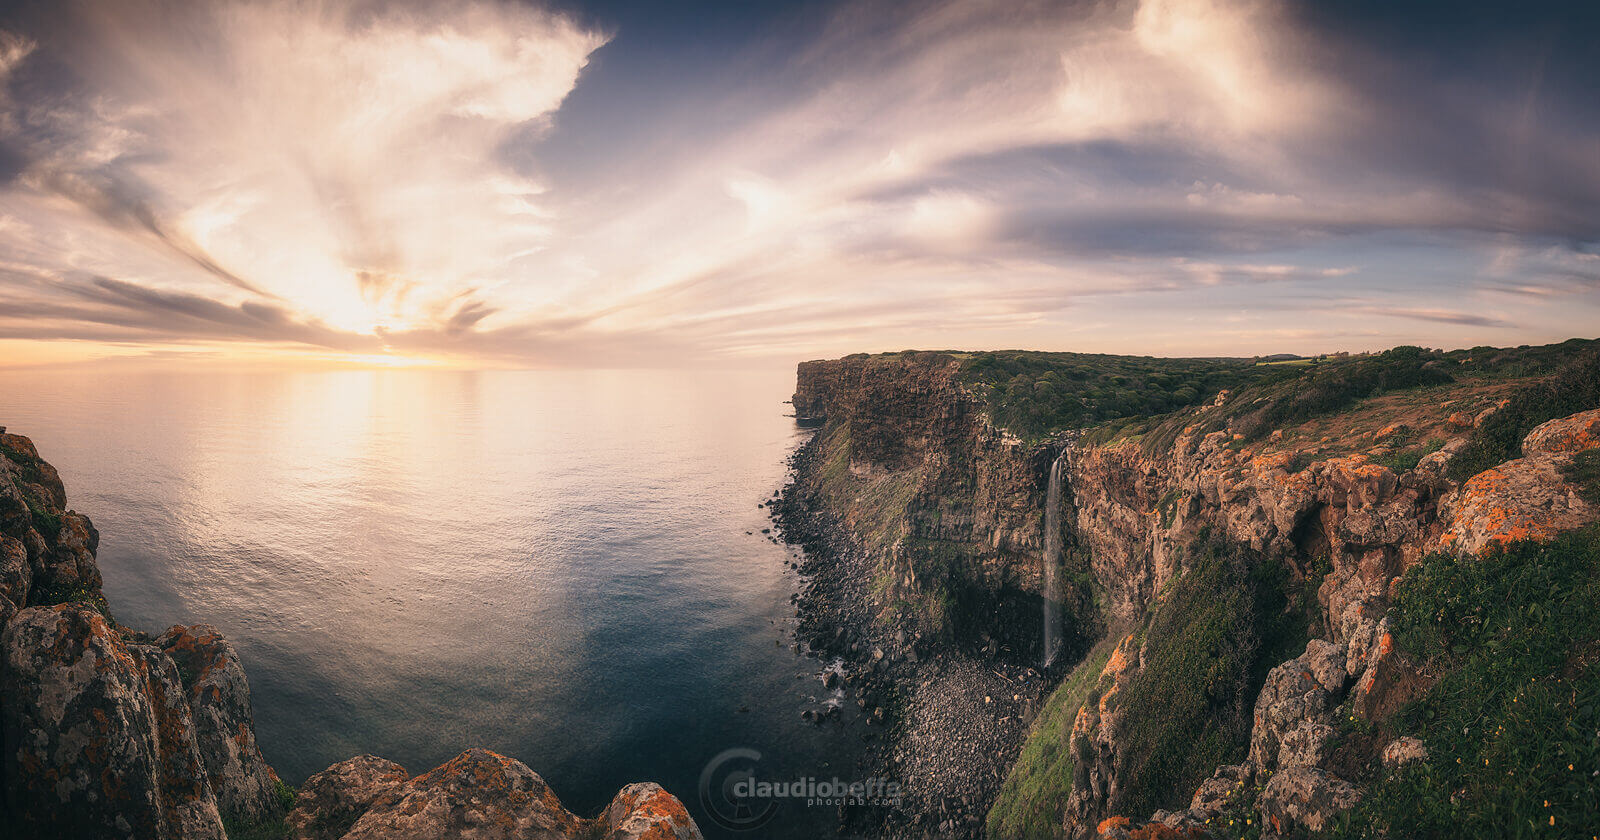 Jump in the sea, sardinia, italy, landscape, seascape, waterfall, cliff, sunset, sea, clouds, panorama